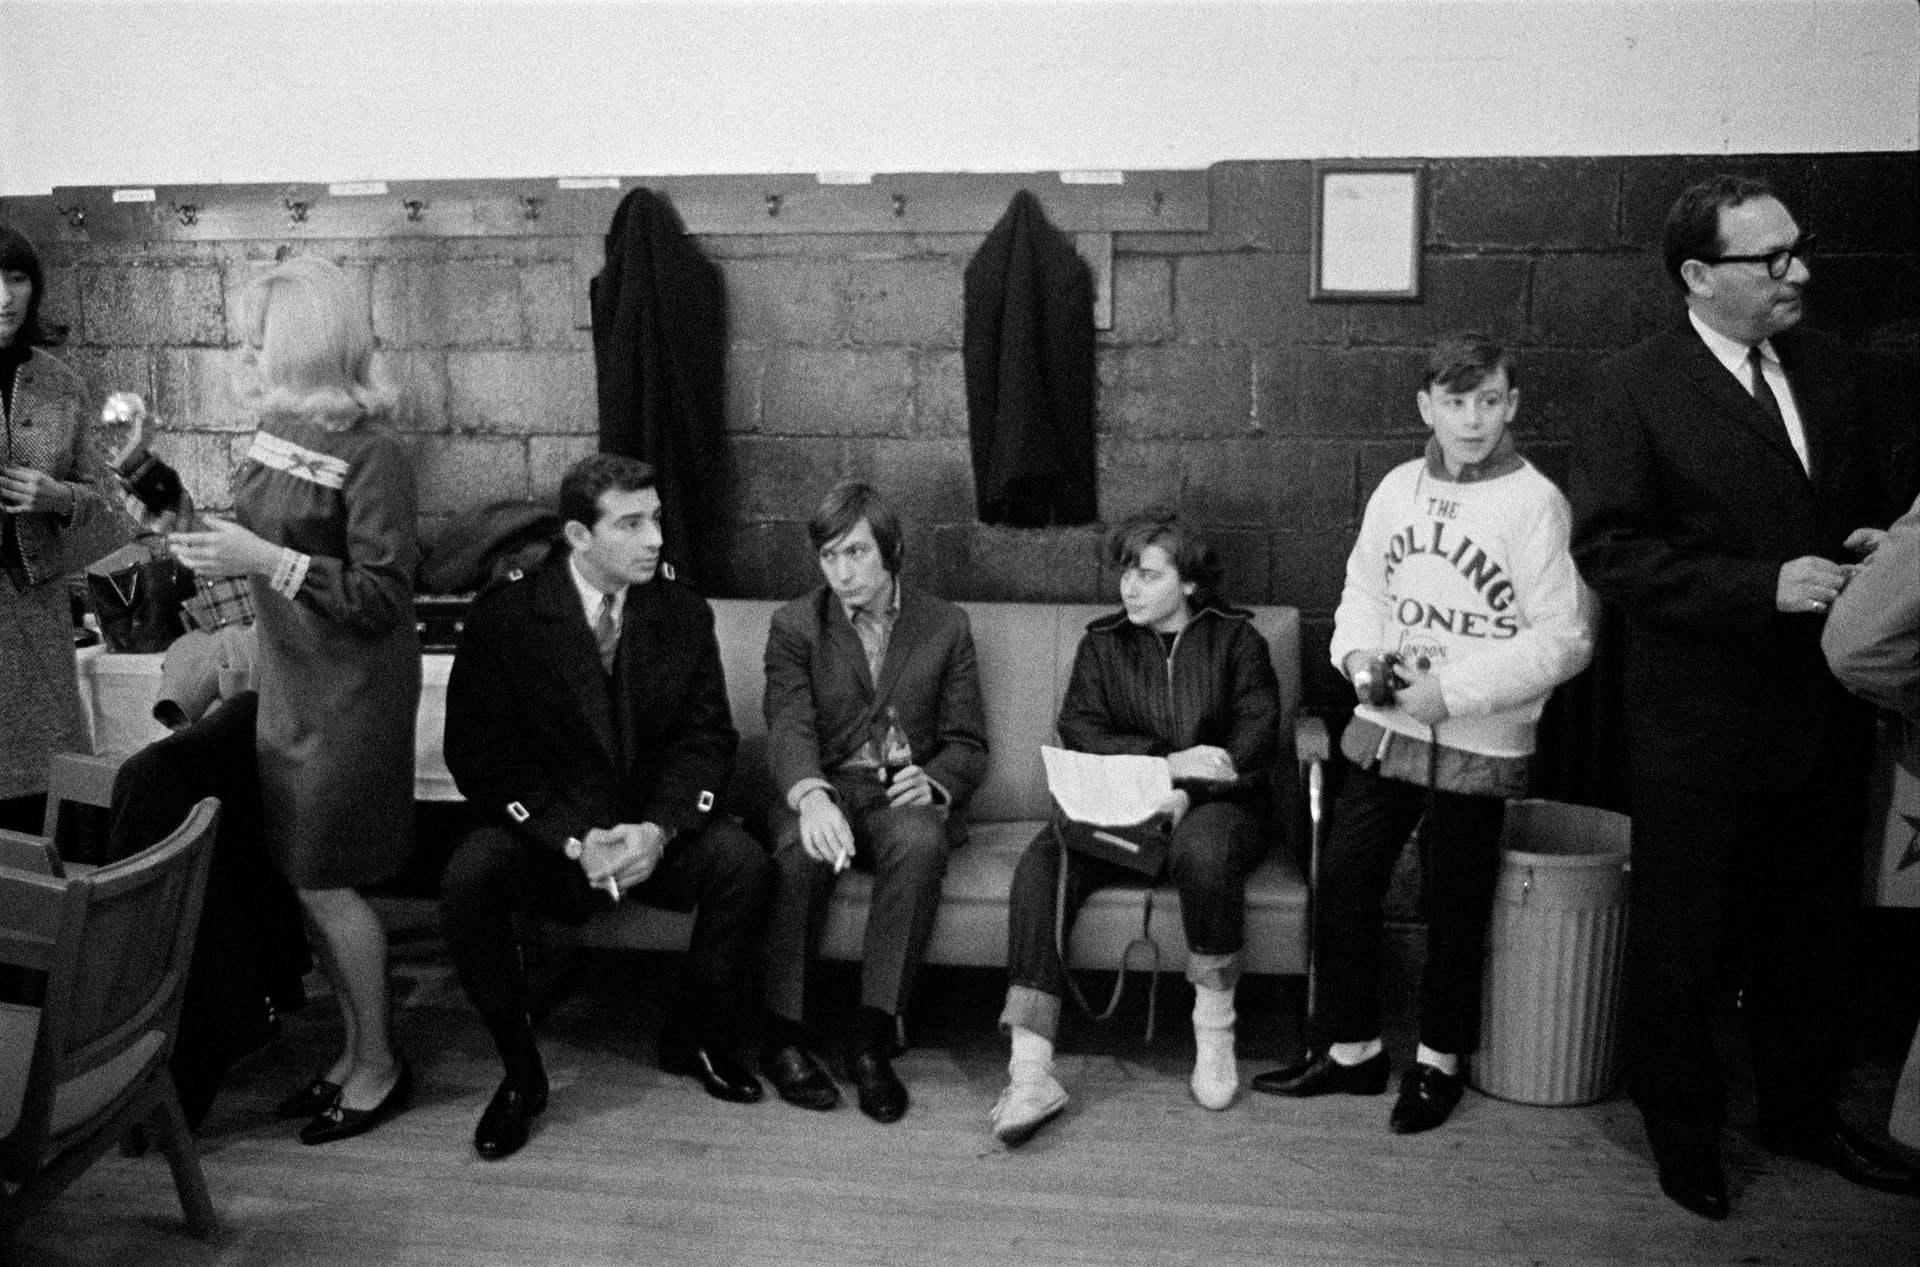 Fans and the promoter's friends (1965) 'Signing autographs was a chore the band dealt with before each show with resignation but endless good humour, generosity and kindness' says Gered Mankowitz